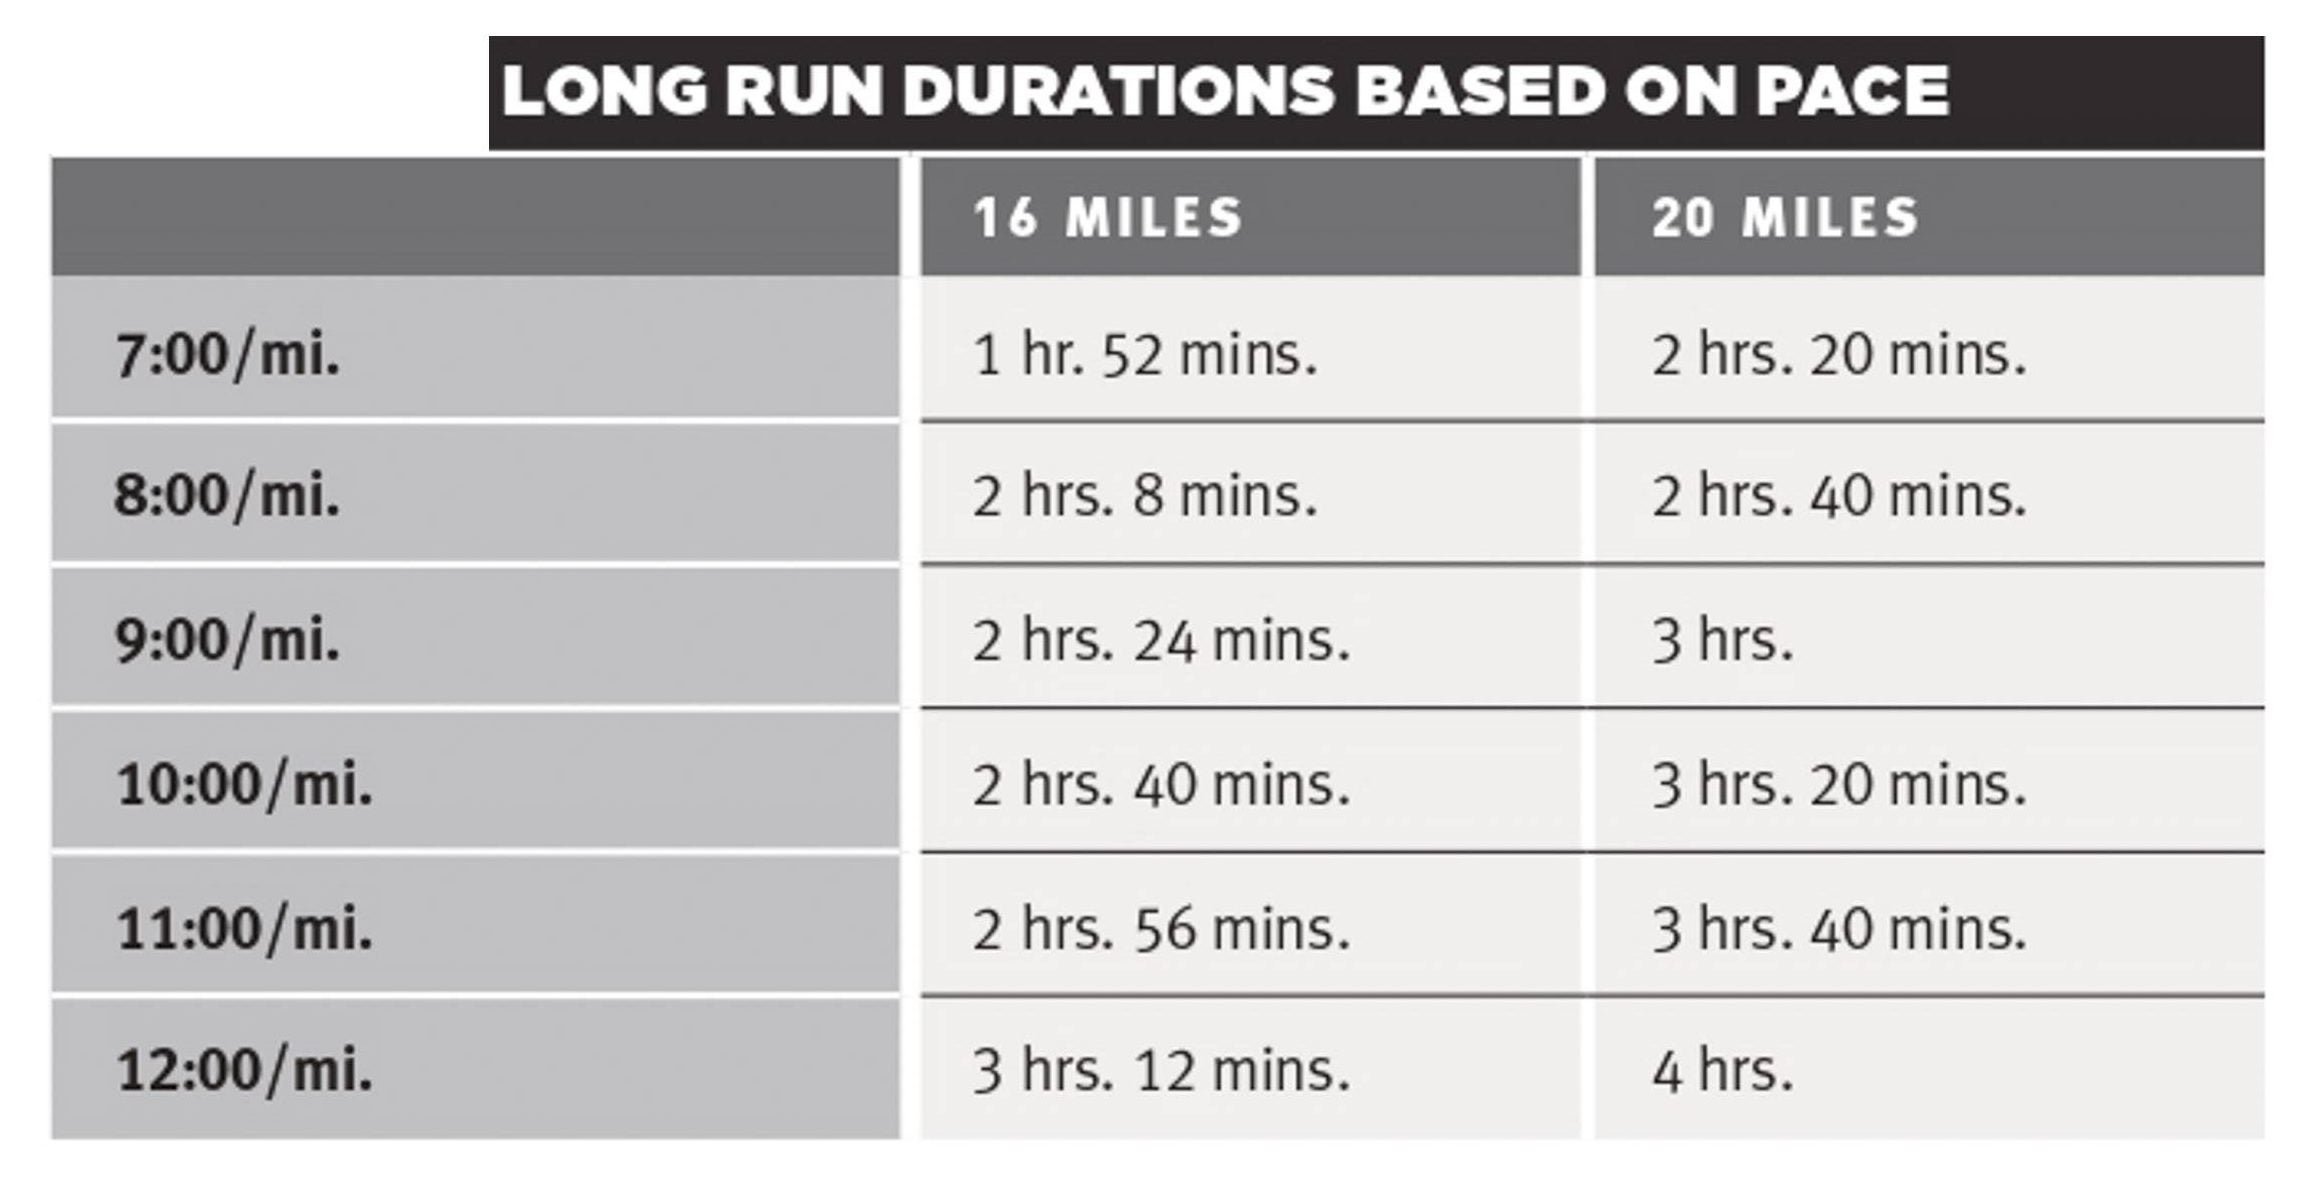 Table showing duration of 16- or 20-mile long runs based on pace